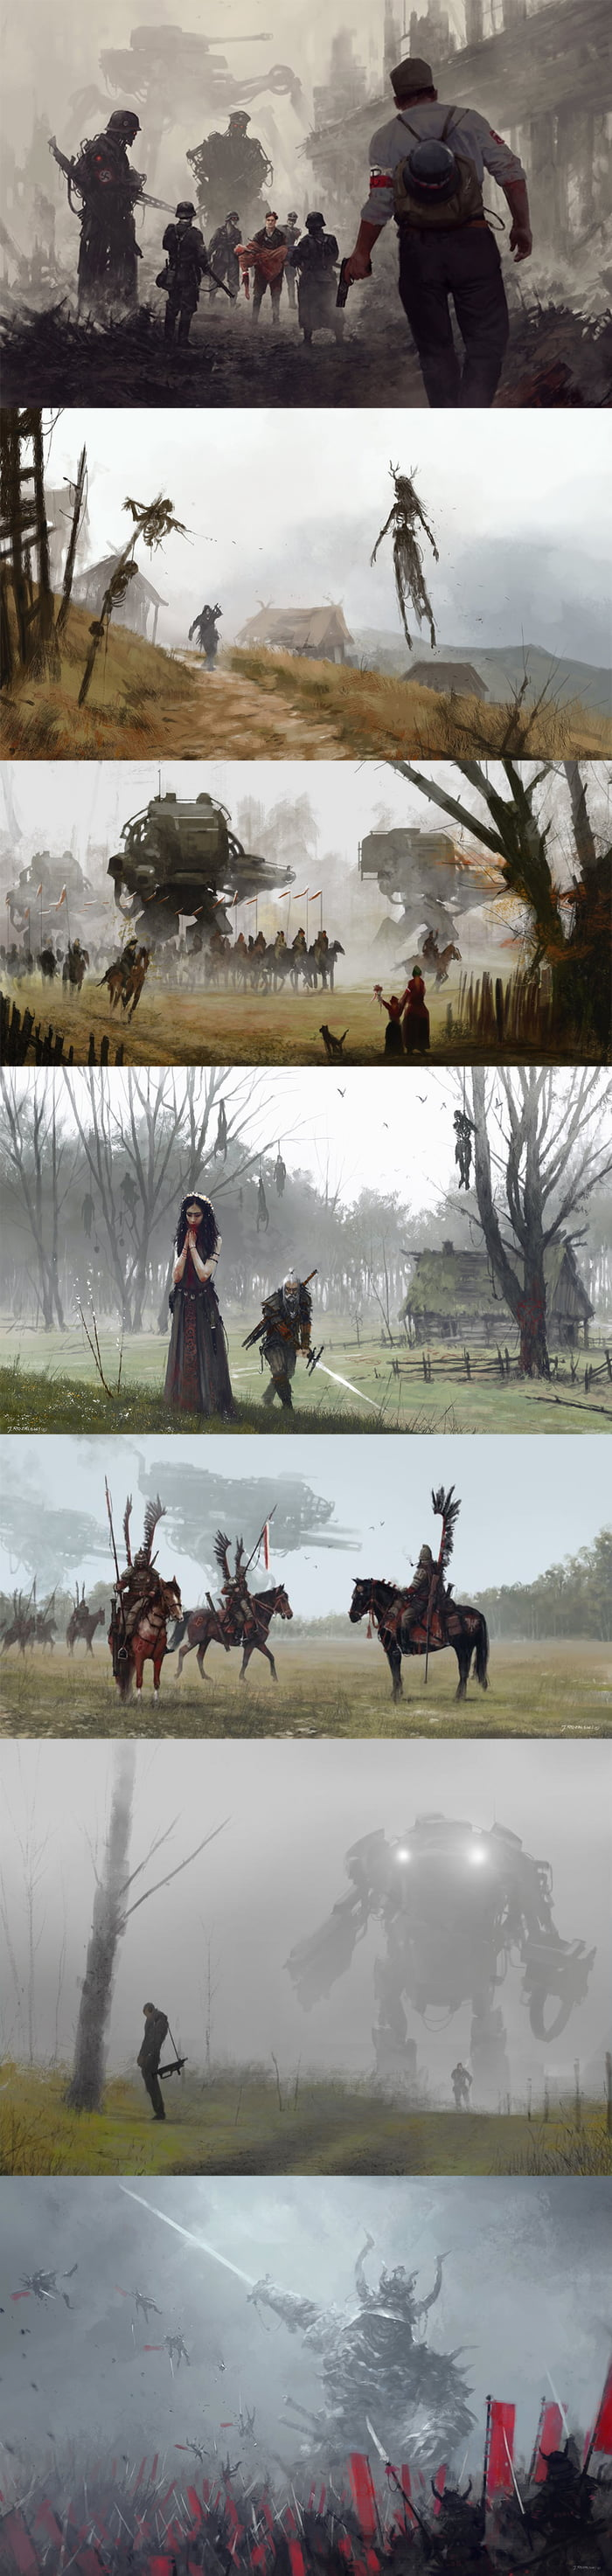 I heard that you guys like this type of artwork. Made by polish artist Jakub Rozalski.